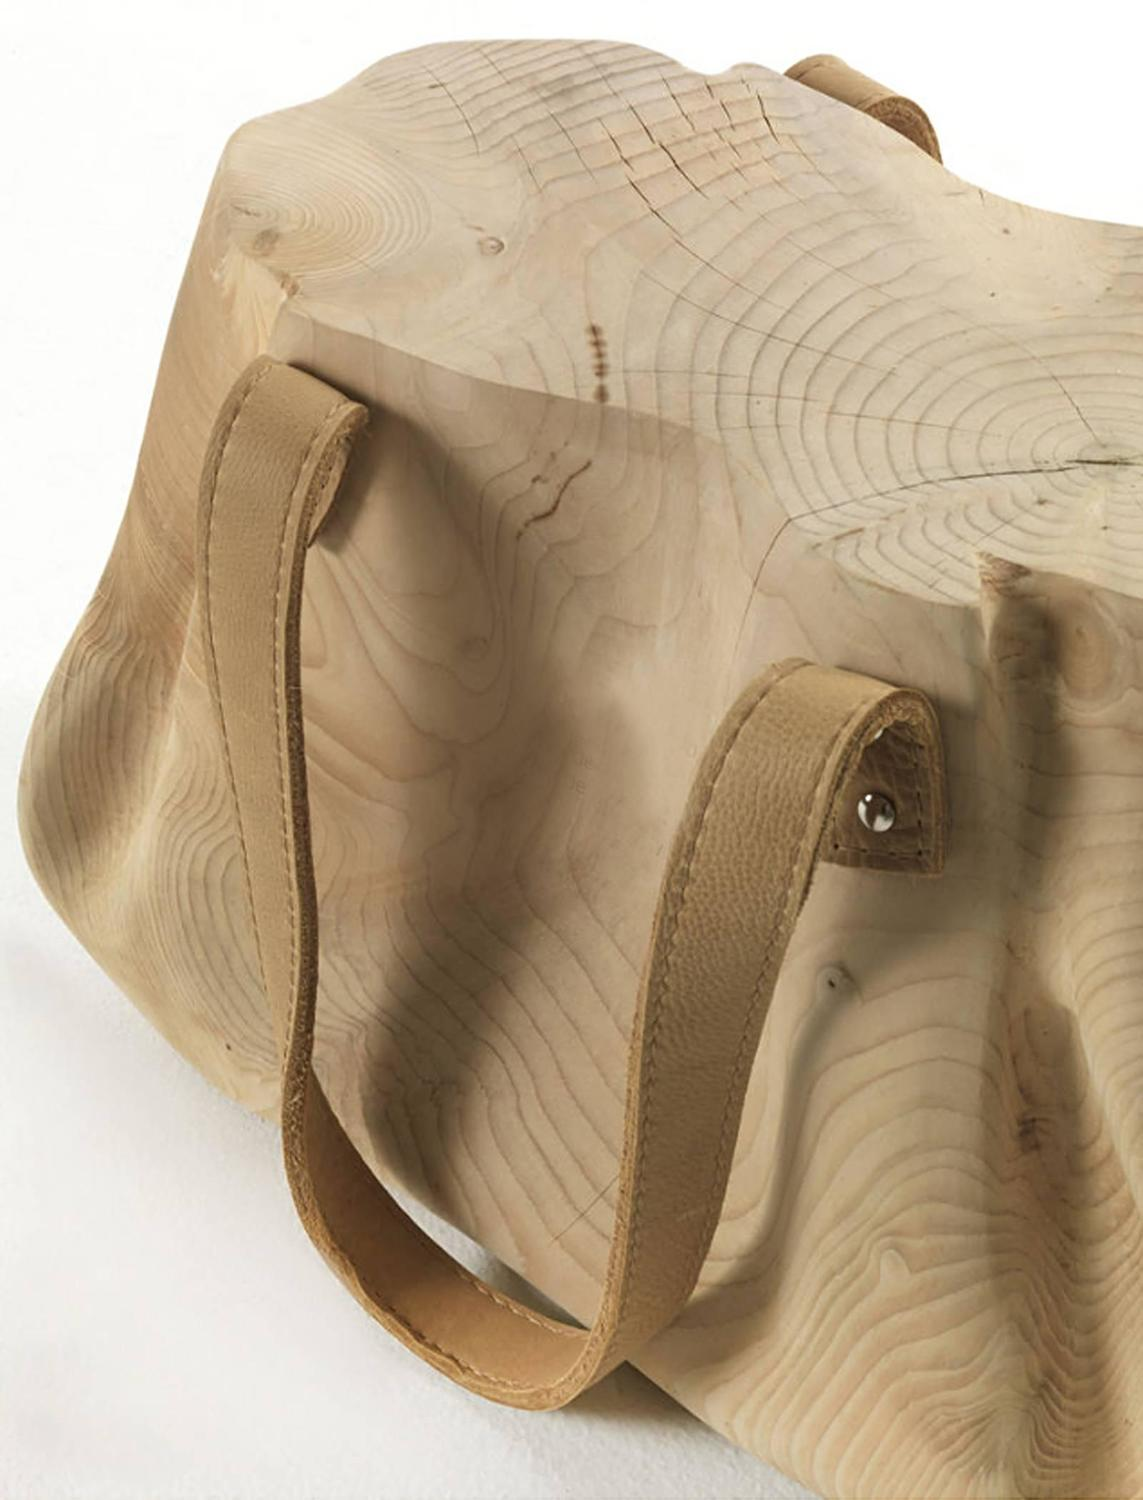 Bag stool in solid natural cedar wood hand carved with